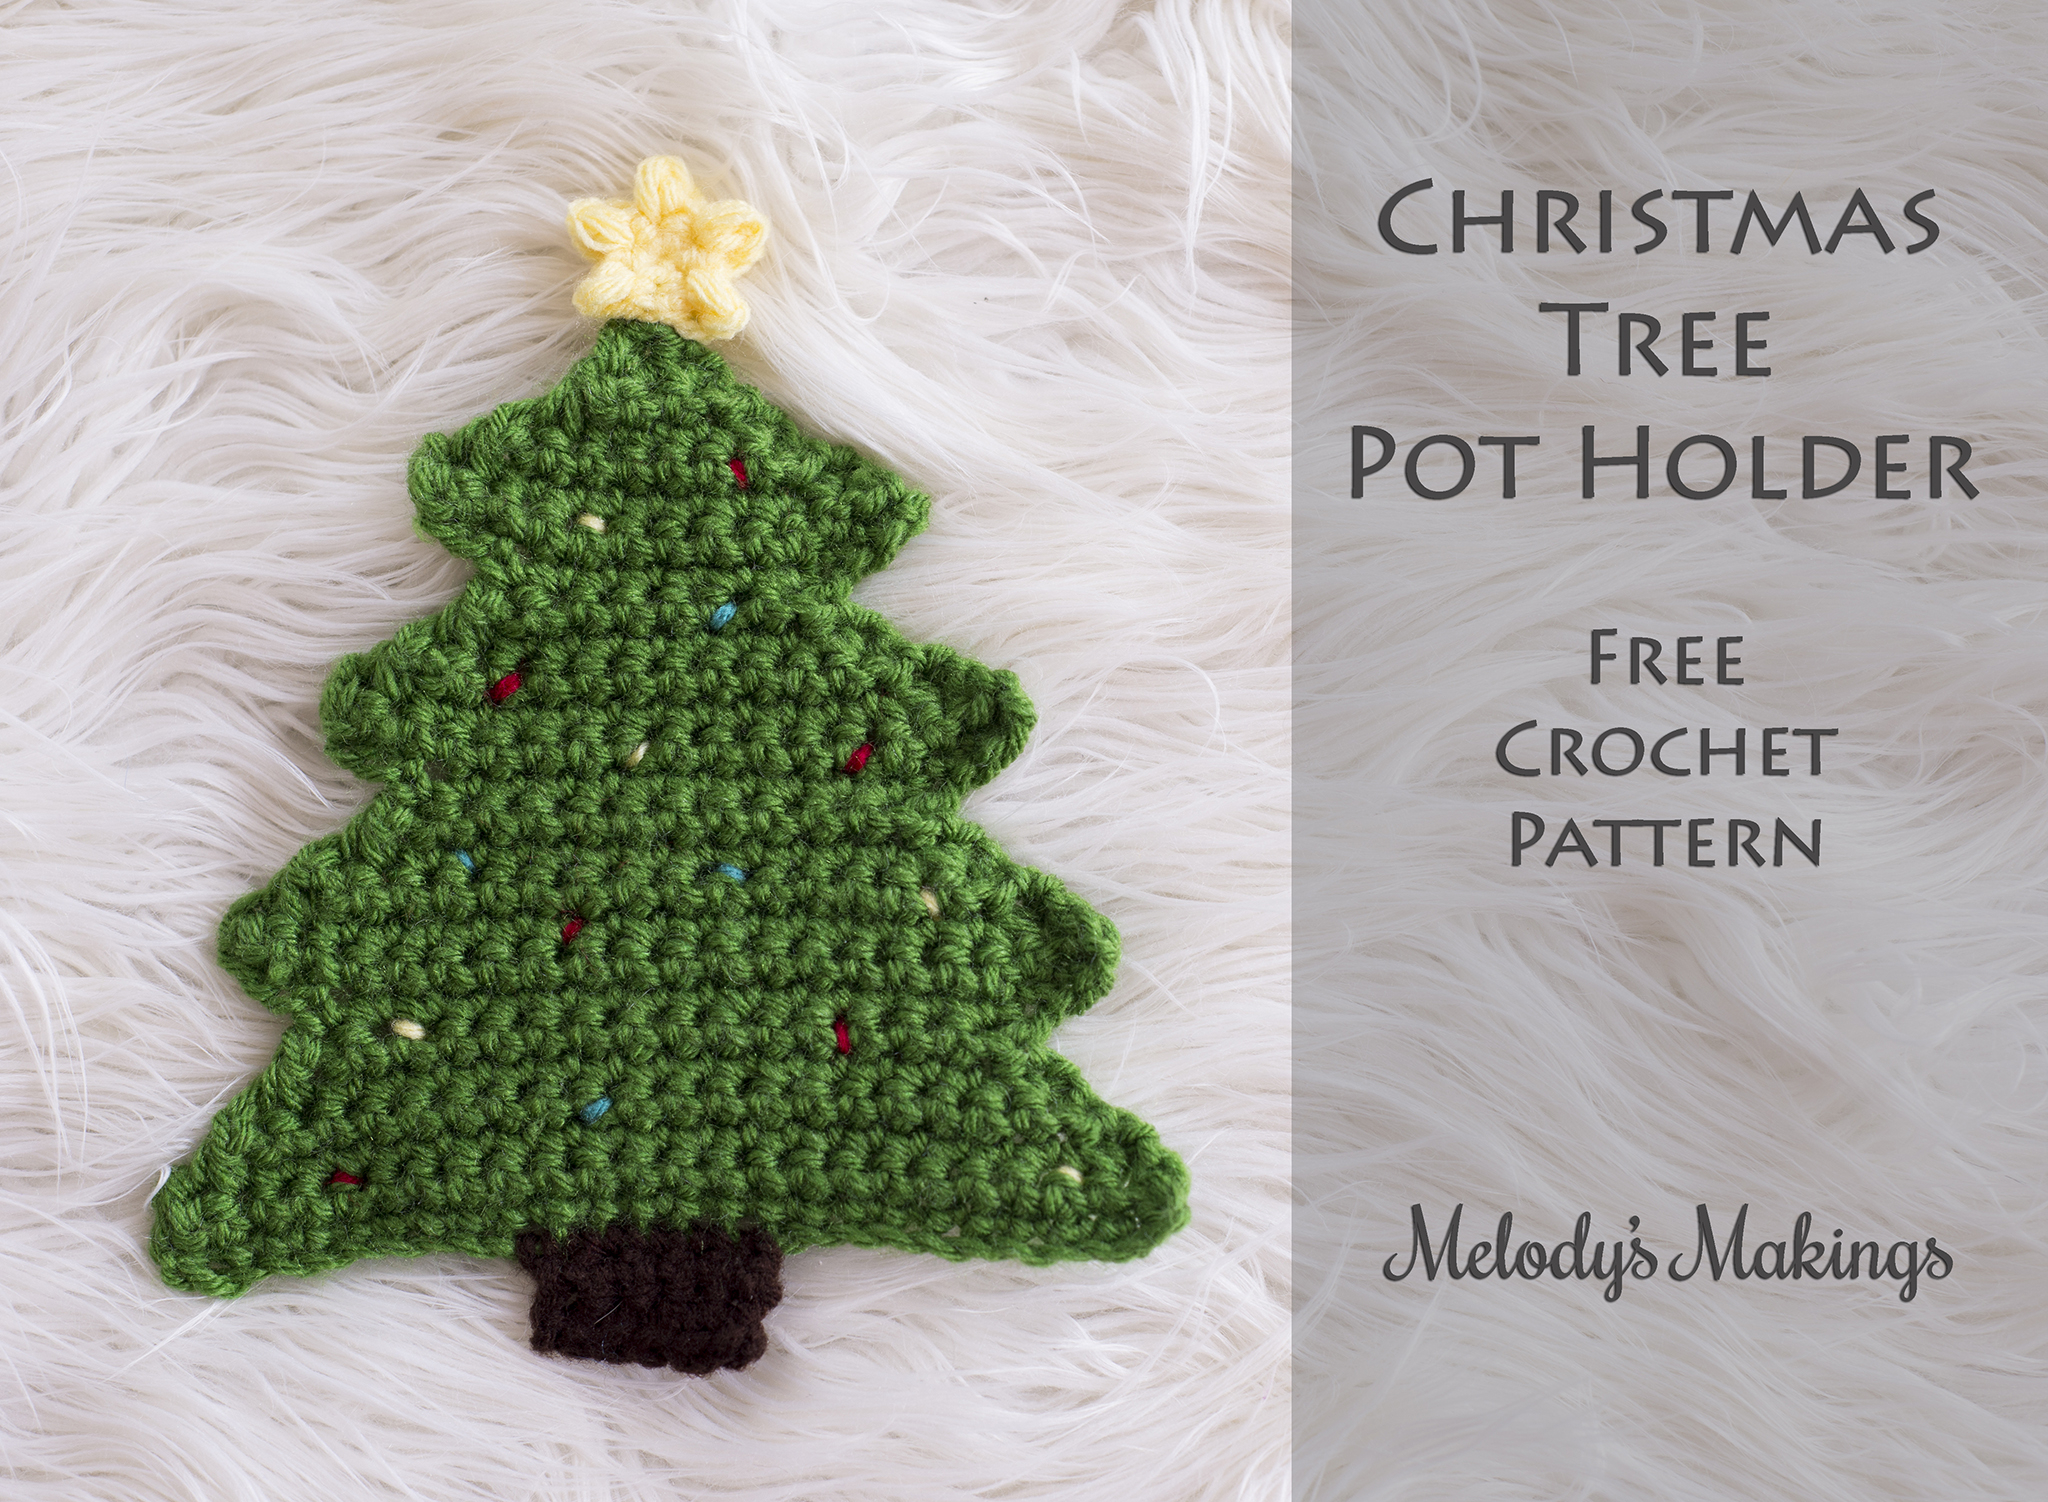 Free Knitted Christmas Tree Decorations Patterns Christmas Tree Pot Holder Pattern Crochet Knit Melodys Makings